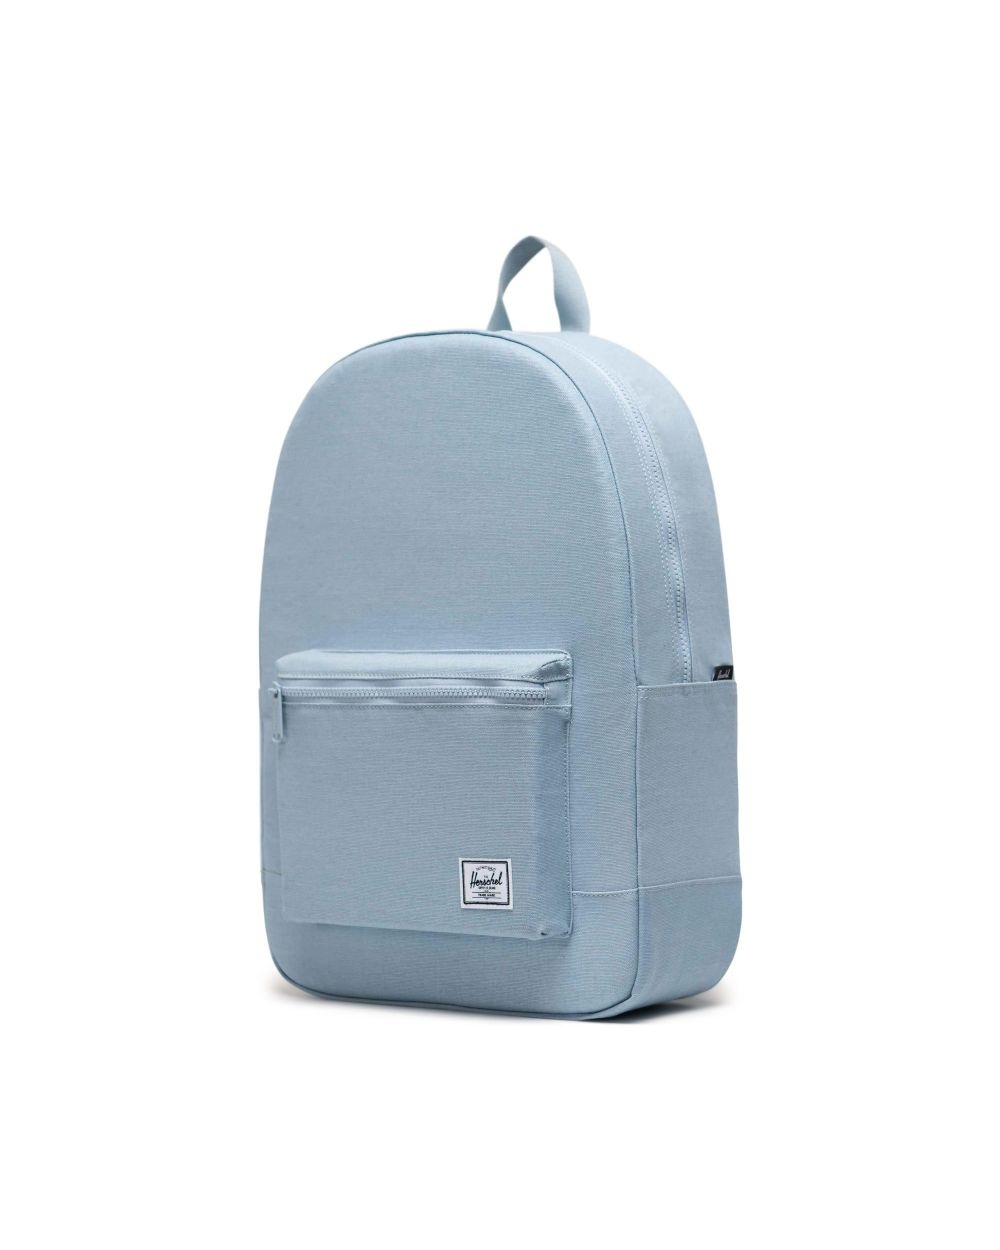 Cotton Casuals I Daypack blue fog-3